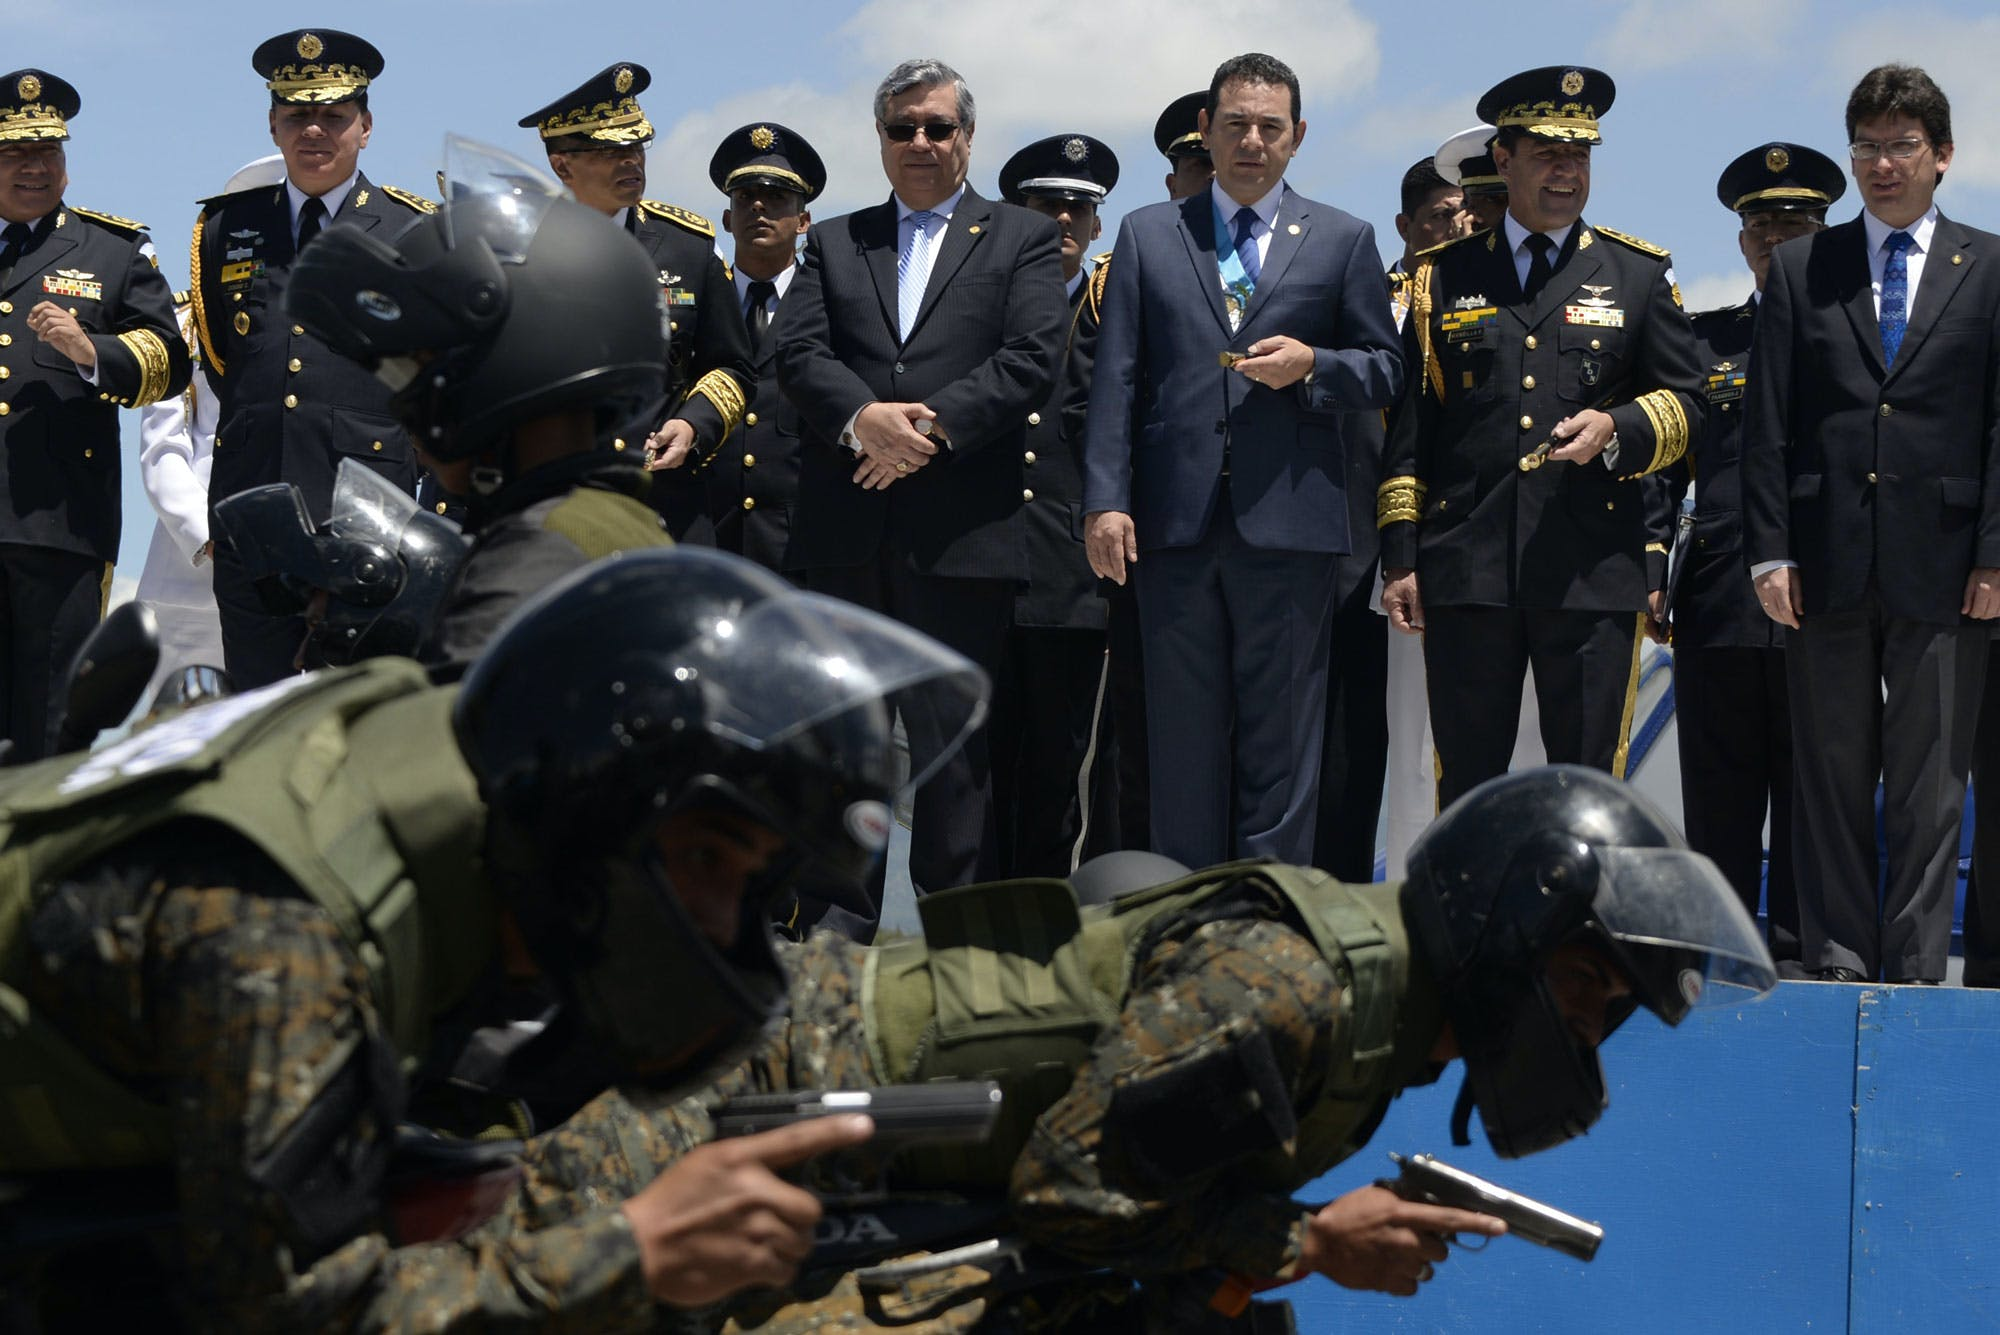 Guatemalan President Jimmy Morales (3-R) attends a military parade during the celebration of the Army Day in Guatemala City, on July 3, 2016. / AFP / JOHAN ORDONEZ (Photo credit should read JOHAN ORDONEZ/AFP/Getty Images)